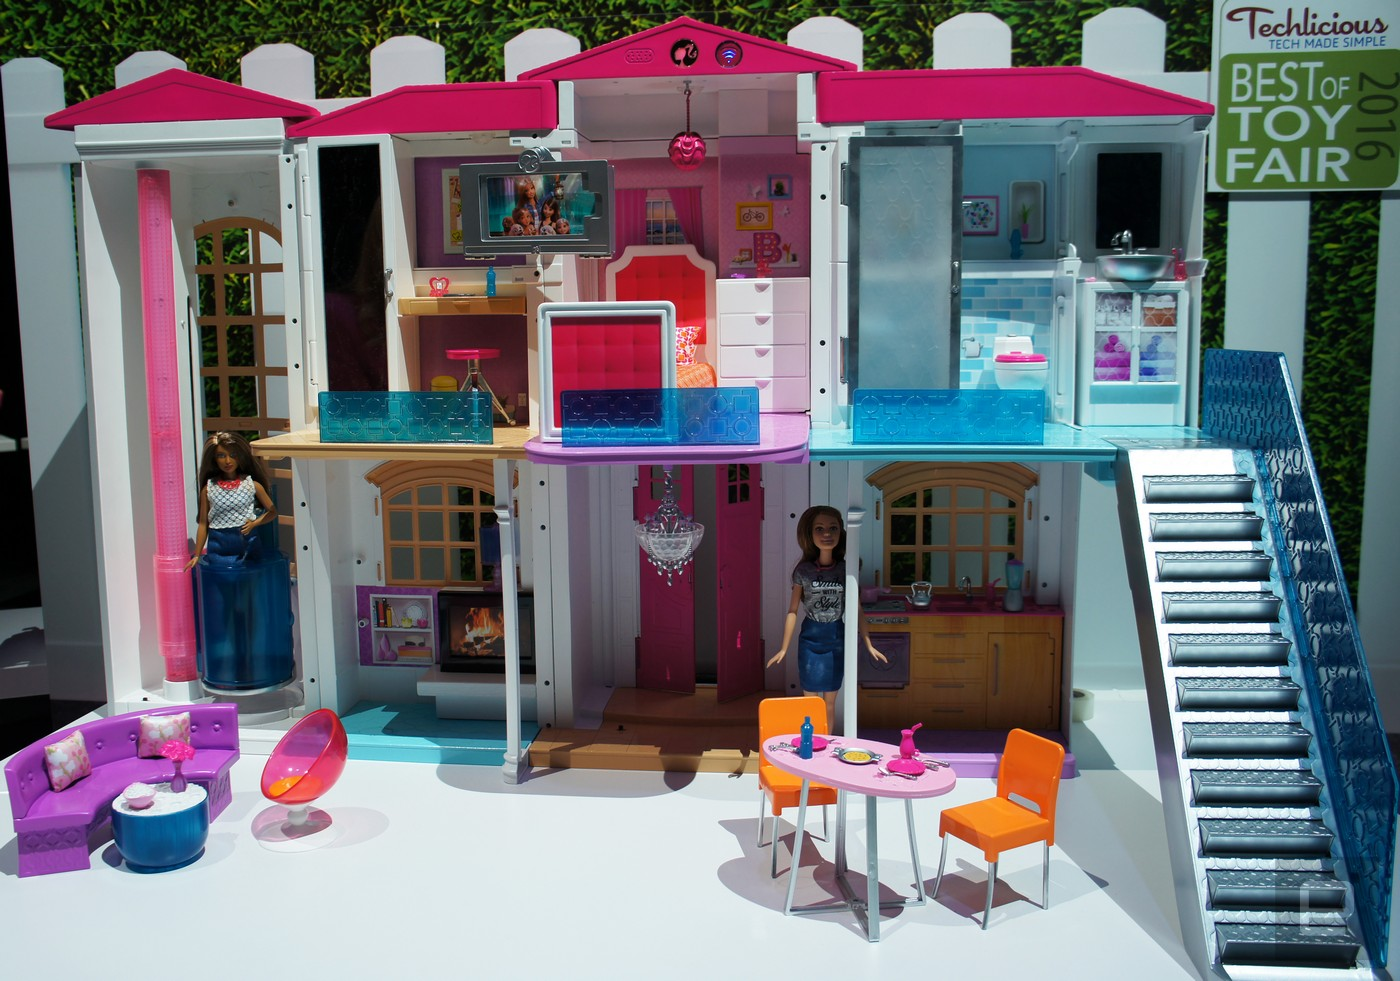 Barbie 39 s smart home is a party house How to make your dream house